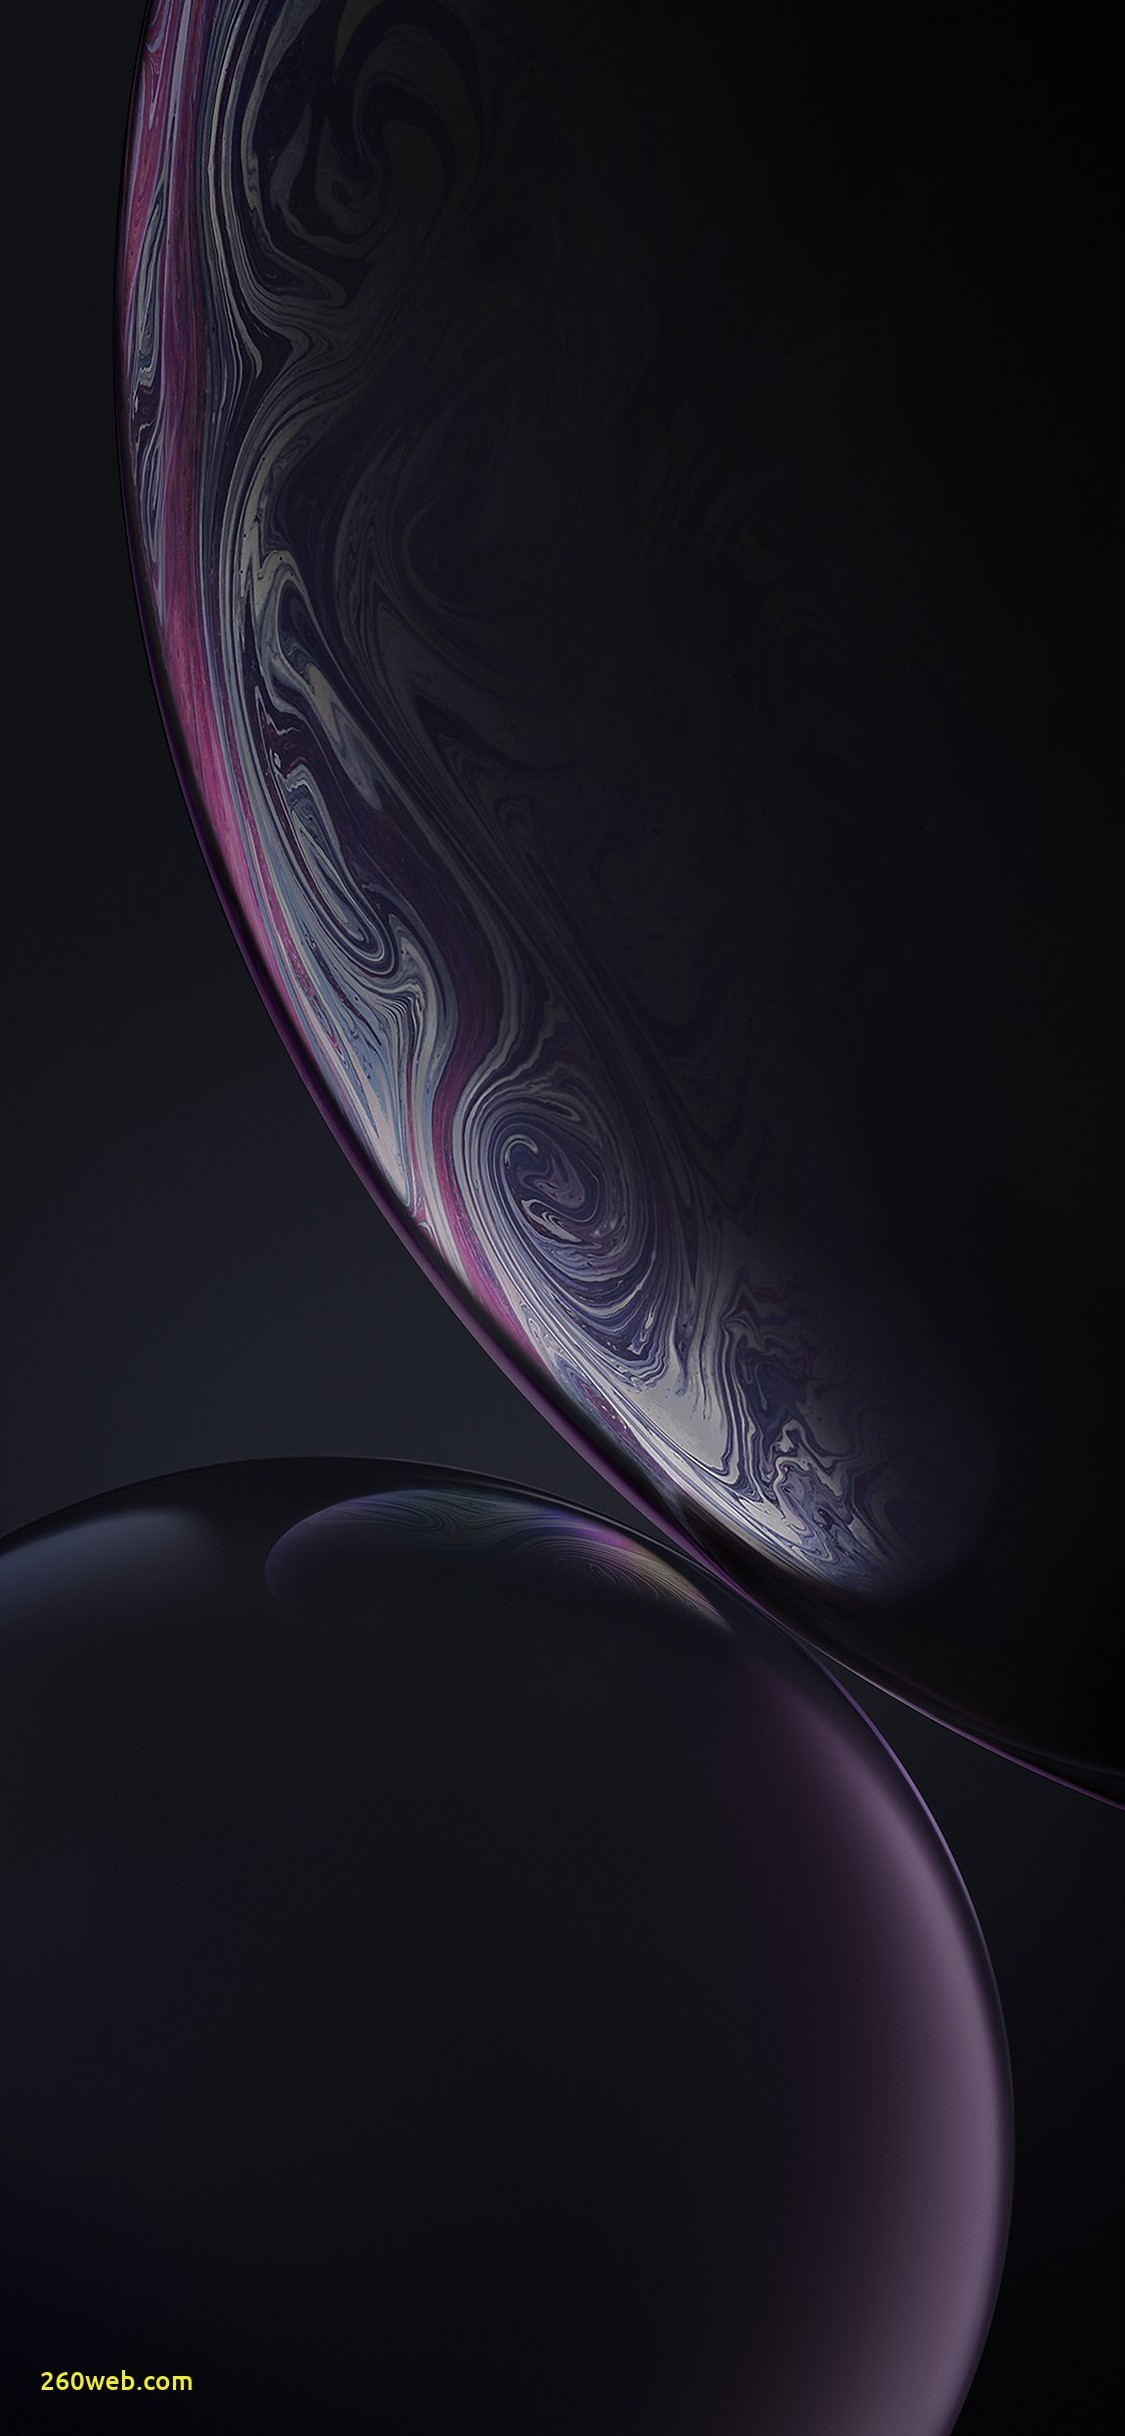 1284555 vertical black and purple iphone wallpaper 1125x2436 for samsung